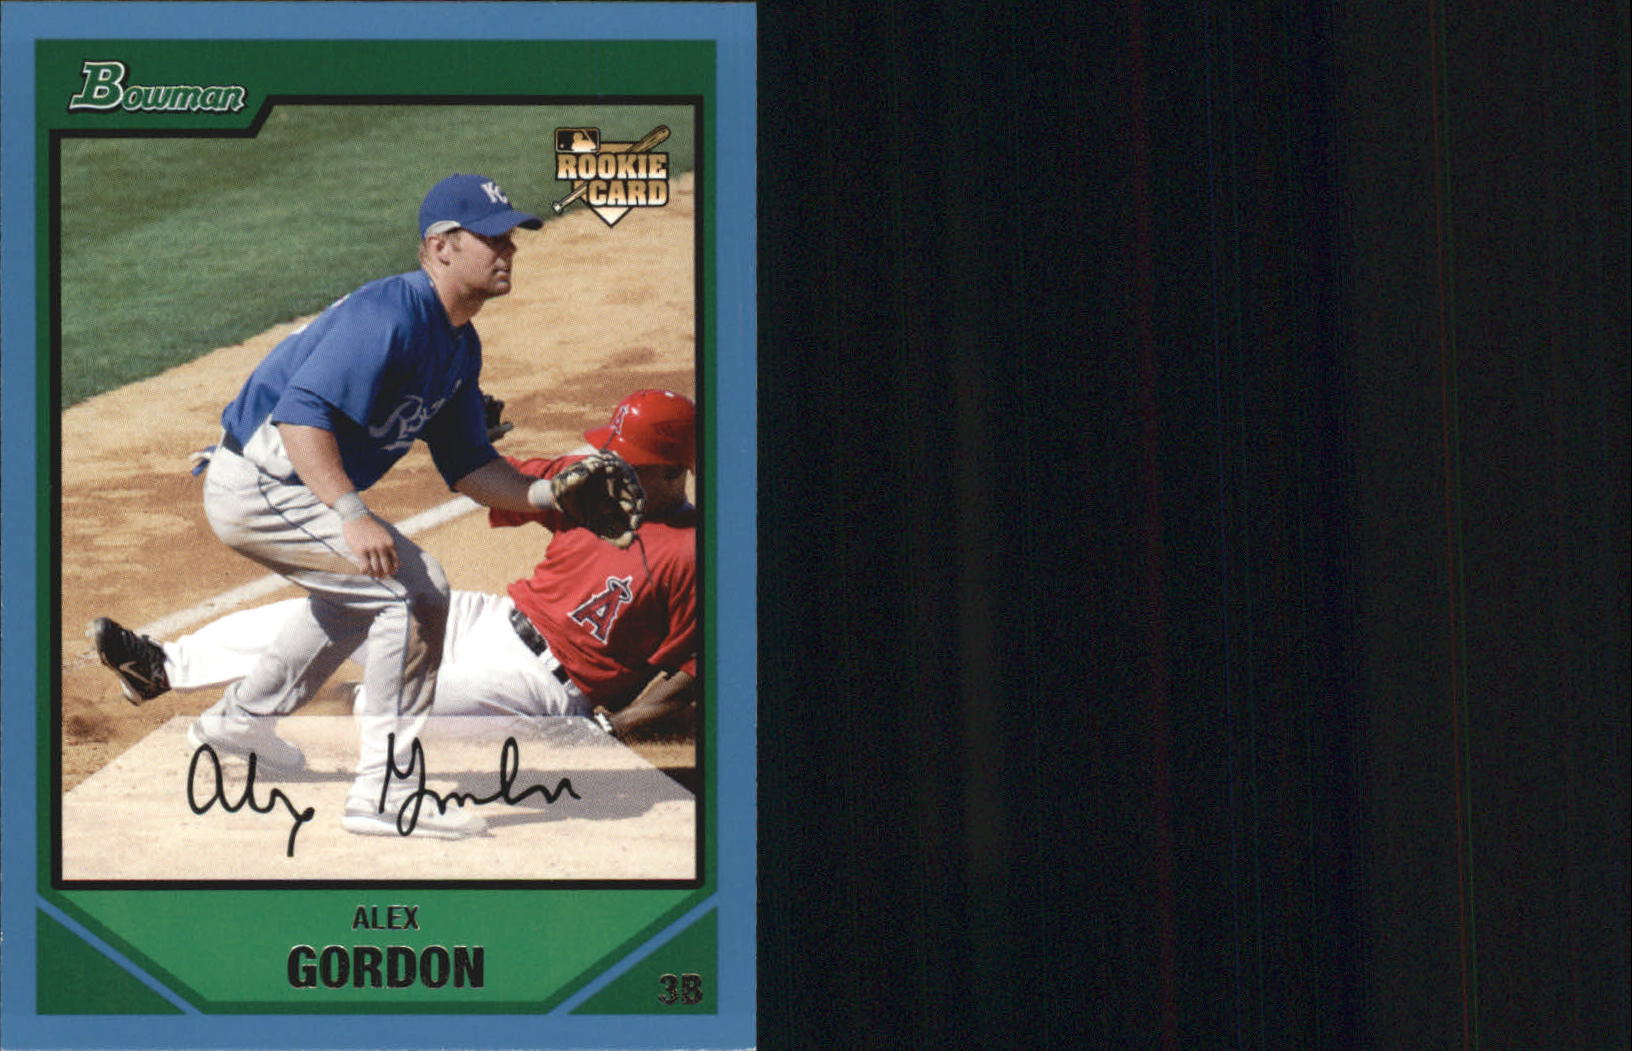 2007 Bowman Draft #BDP15 Alex Gordon RC